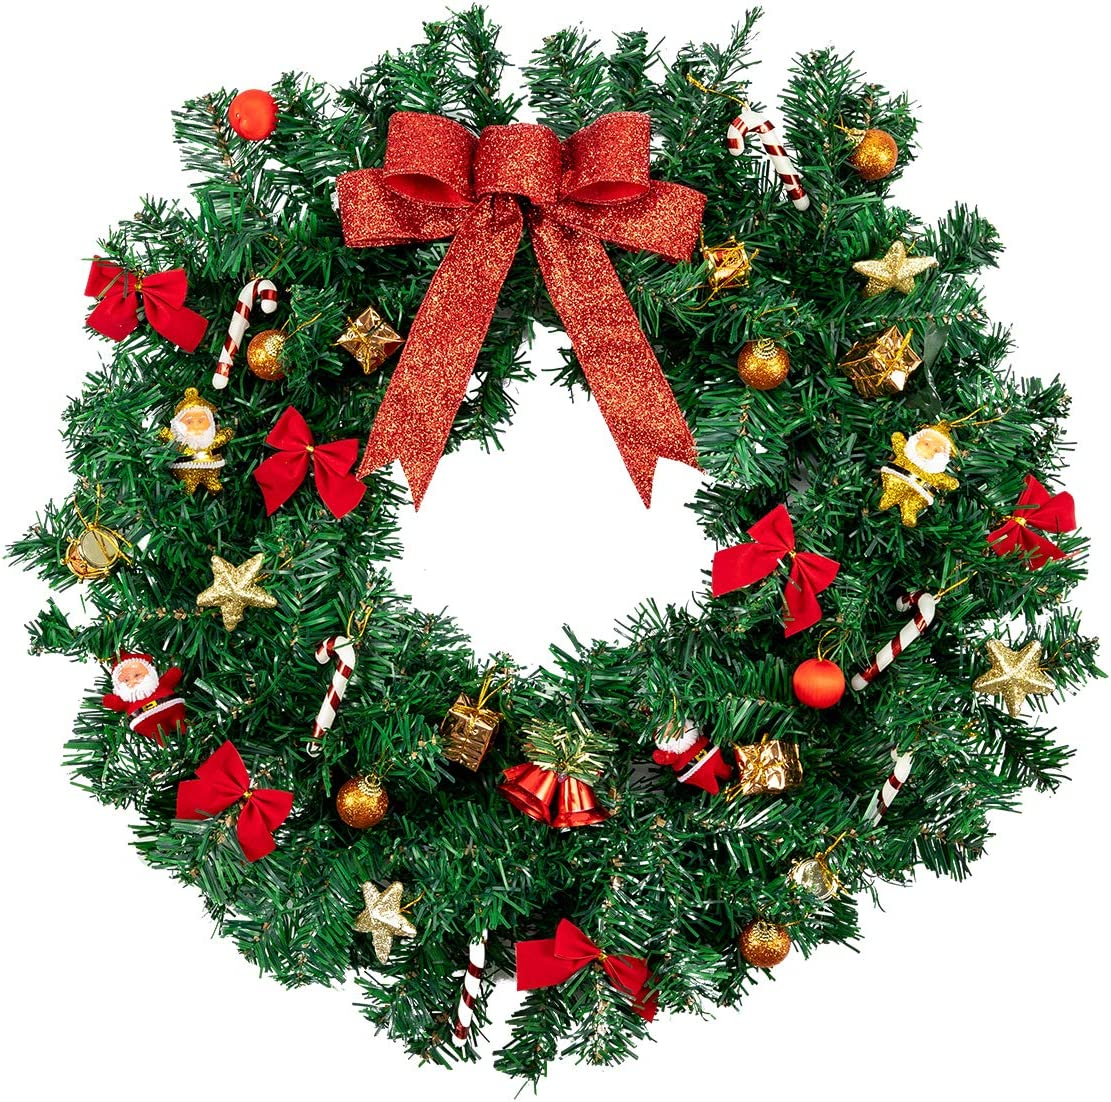 OULII Christmas Garland Christmas Wreath for Hanging Door Decoration